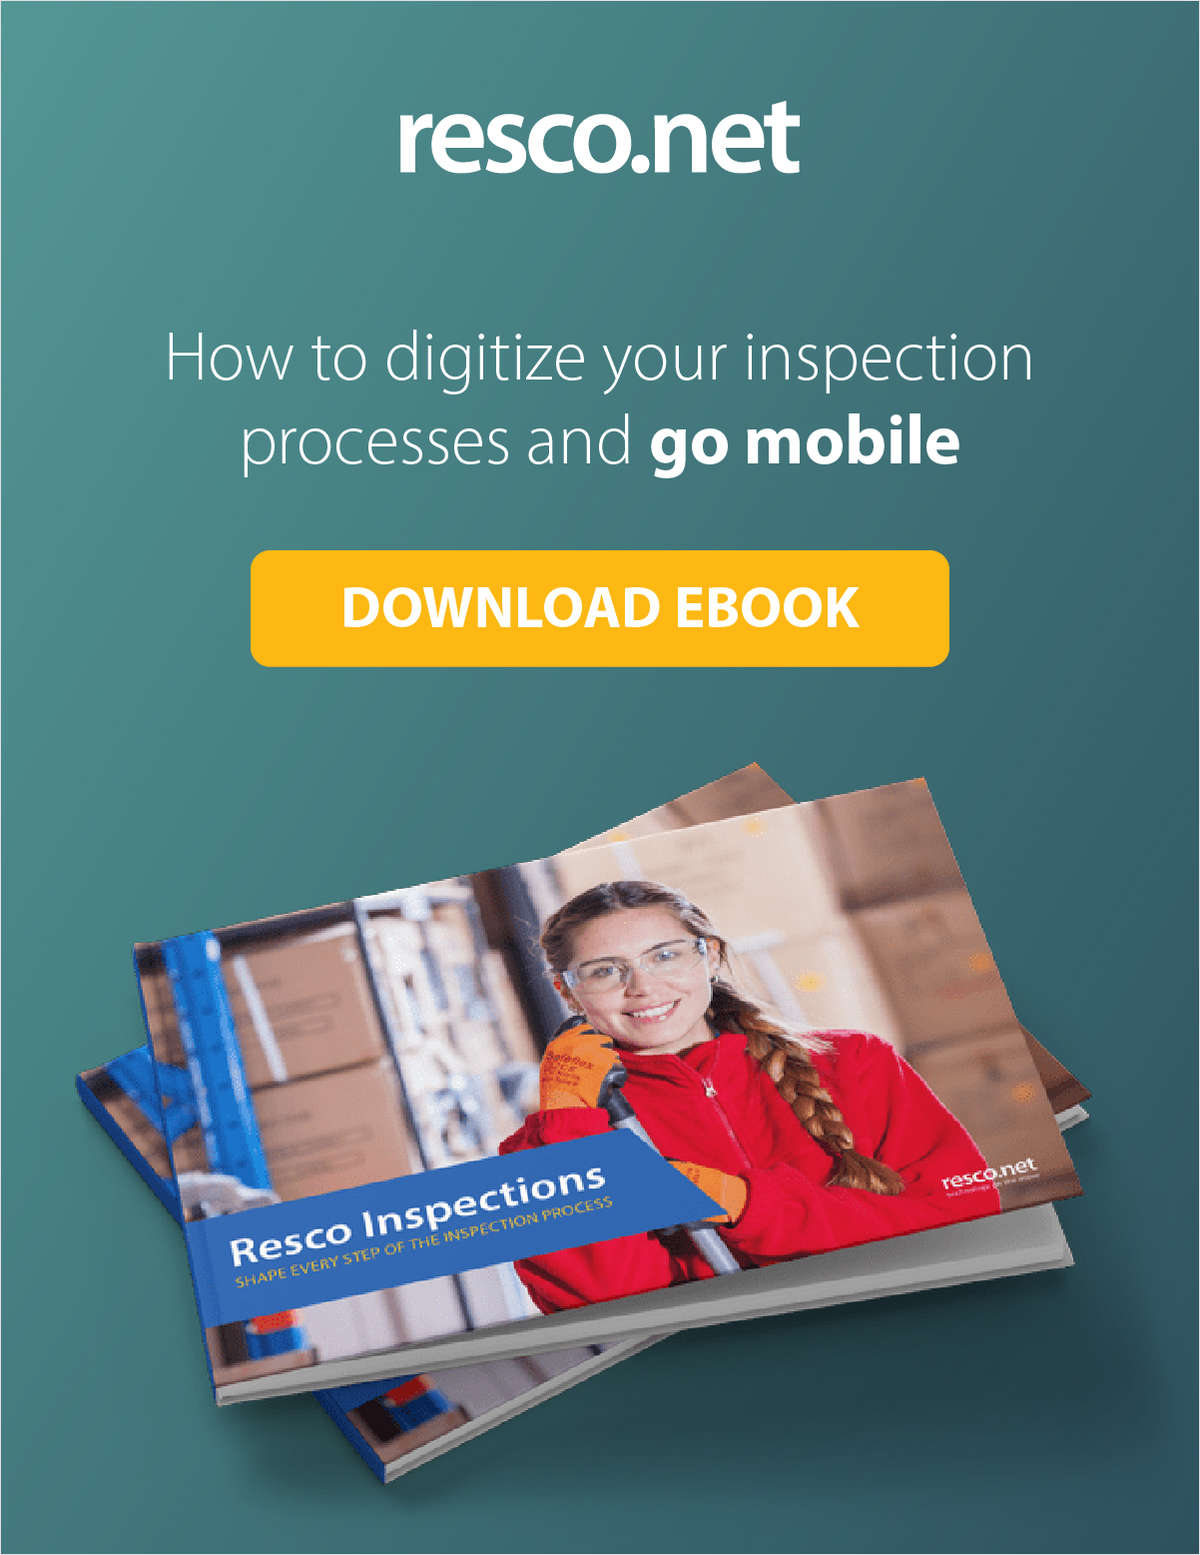 Go Digital, Become Mobile: A New Way to Quicker and Safer Inspections